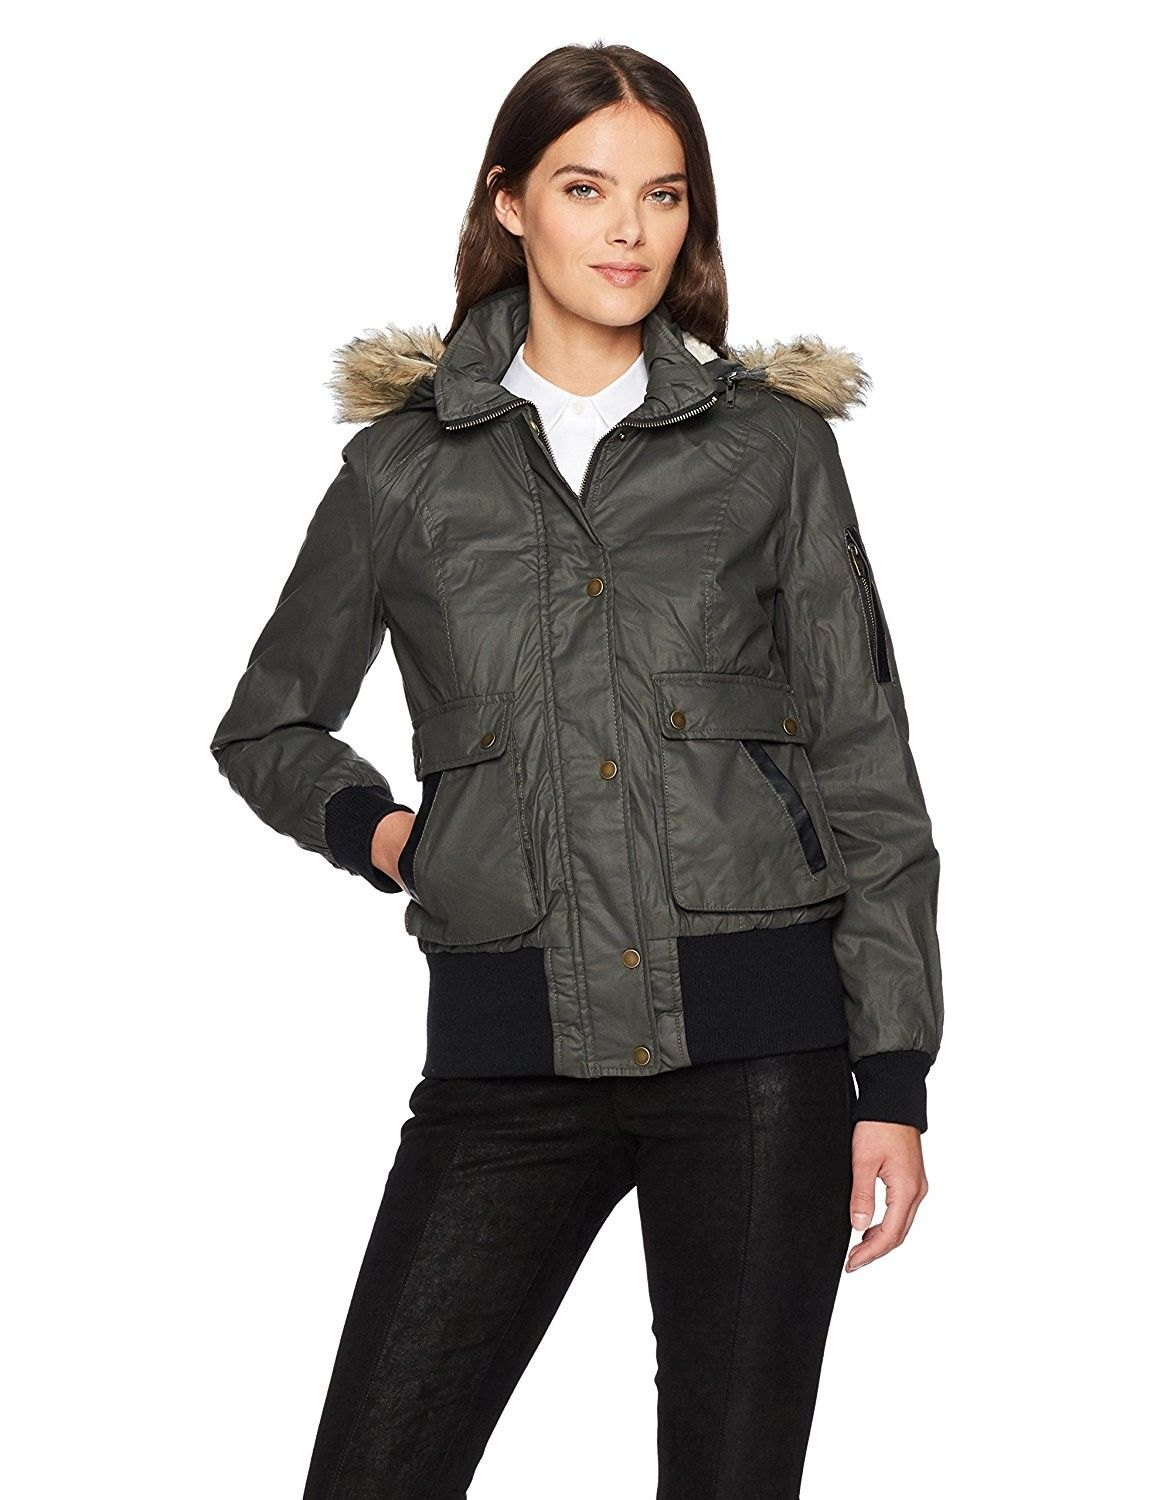 Women S Waxy Cotton Bomber Jacket With A Fur Hood Olive C3185s5gixe Womens Outdoor Clothing Quilted Bomber Jacket Jackets [ 1500 x 1154 Pixel ]